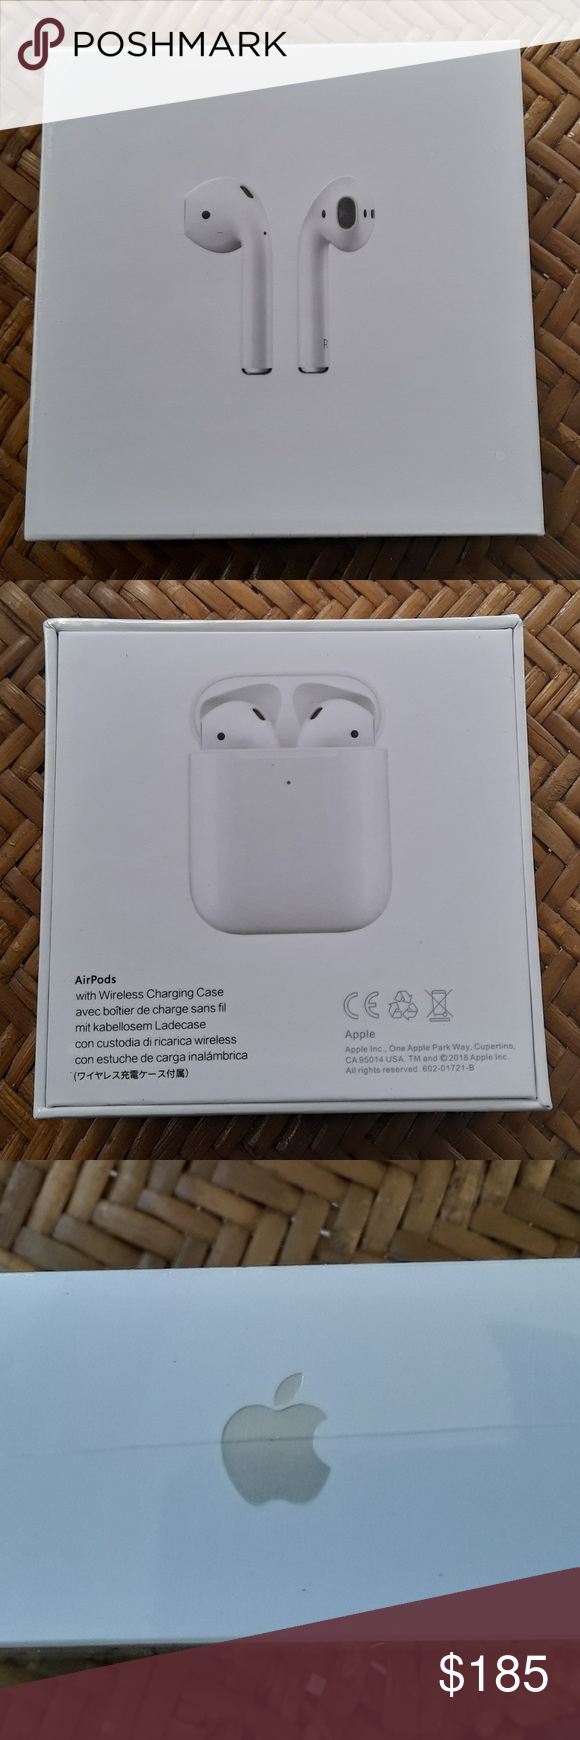 Apple Airpods Apple Airpods 2nd Generation With Wireless Charging Case White Condition Is New Accessories Apple Airpods 2 Apple Things To Sell